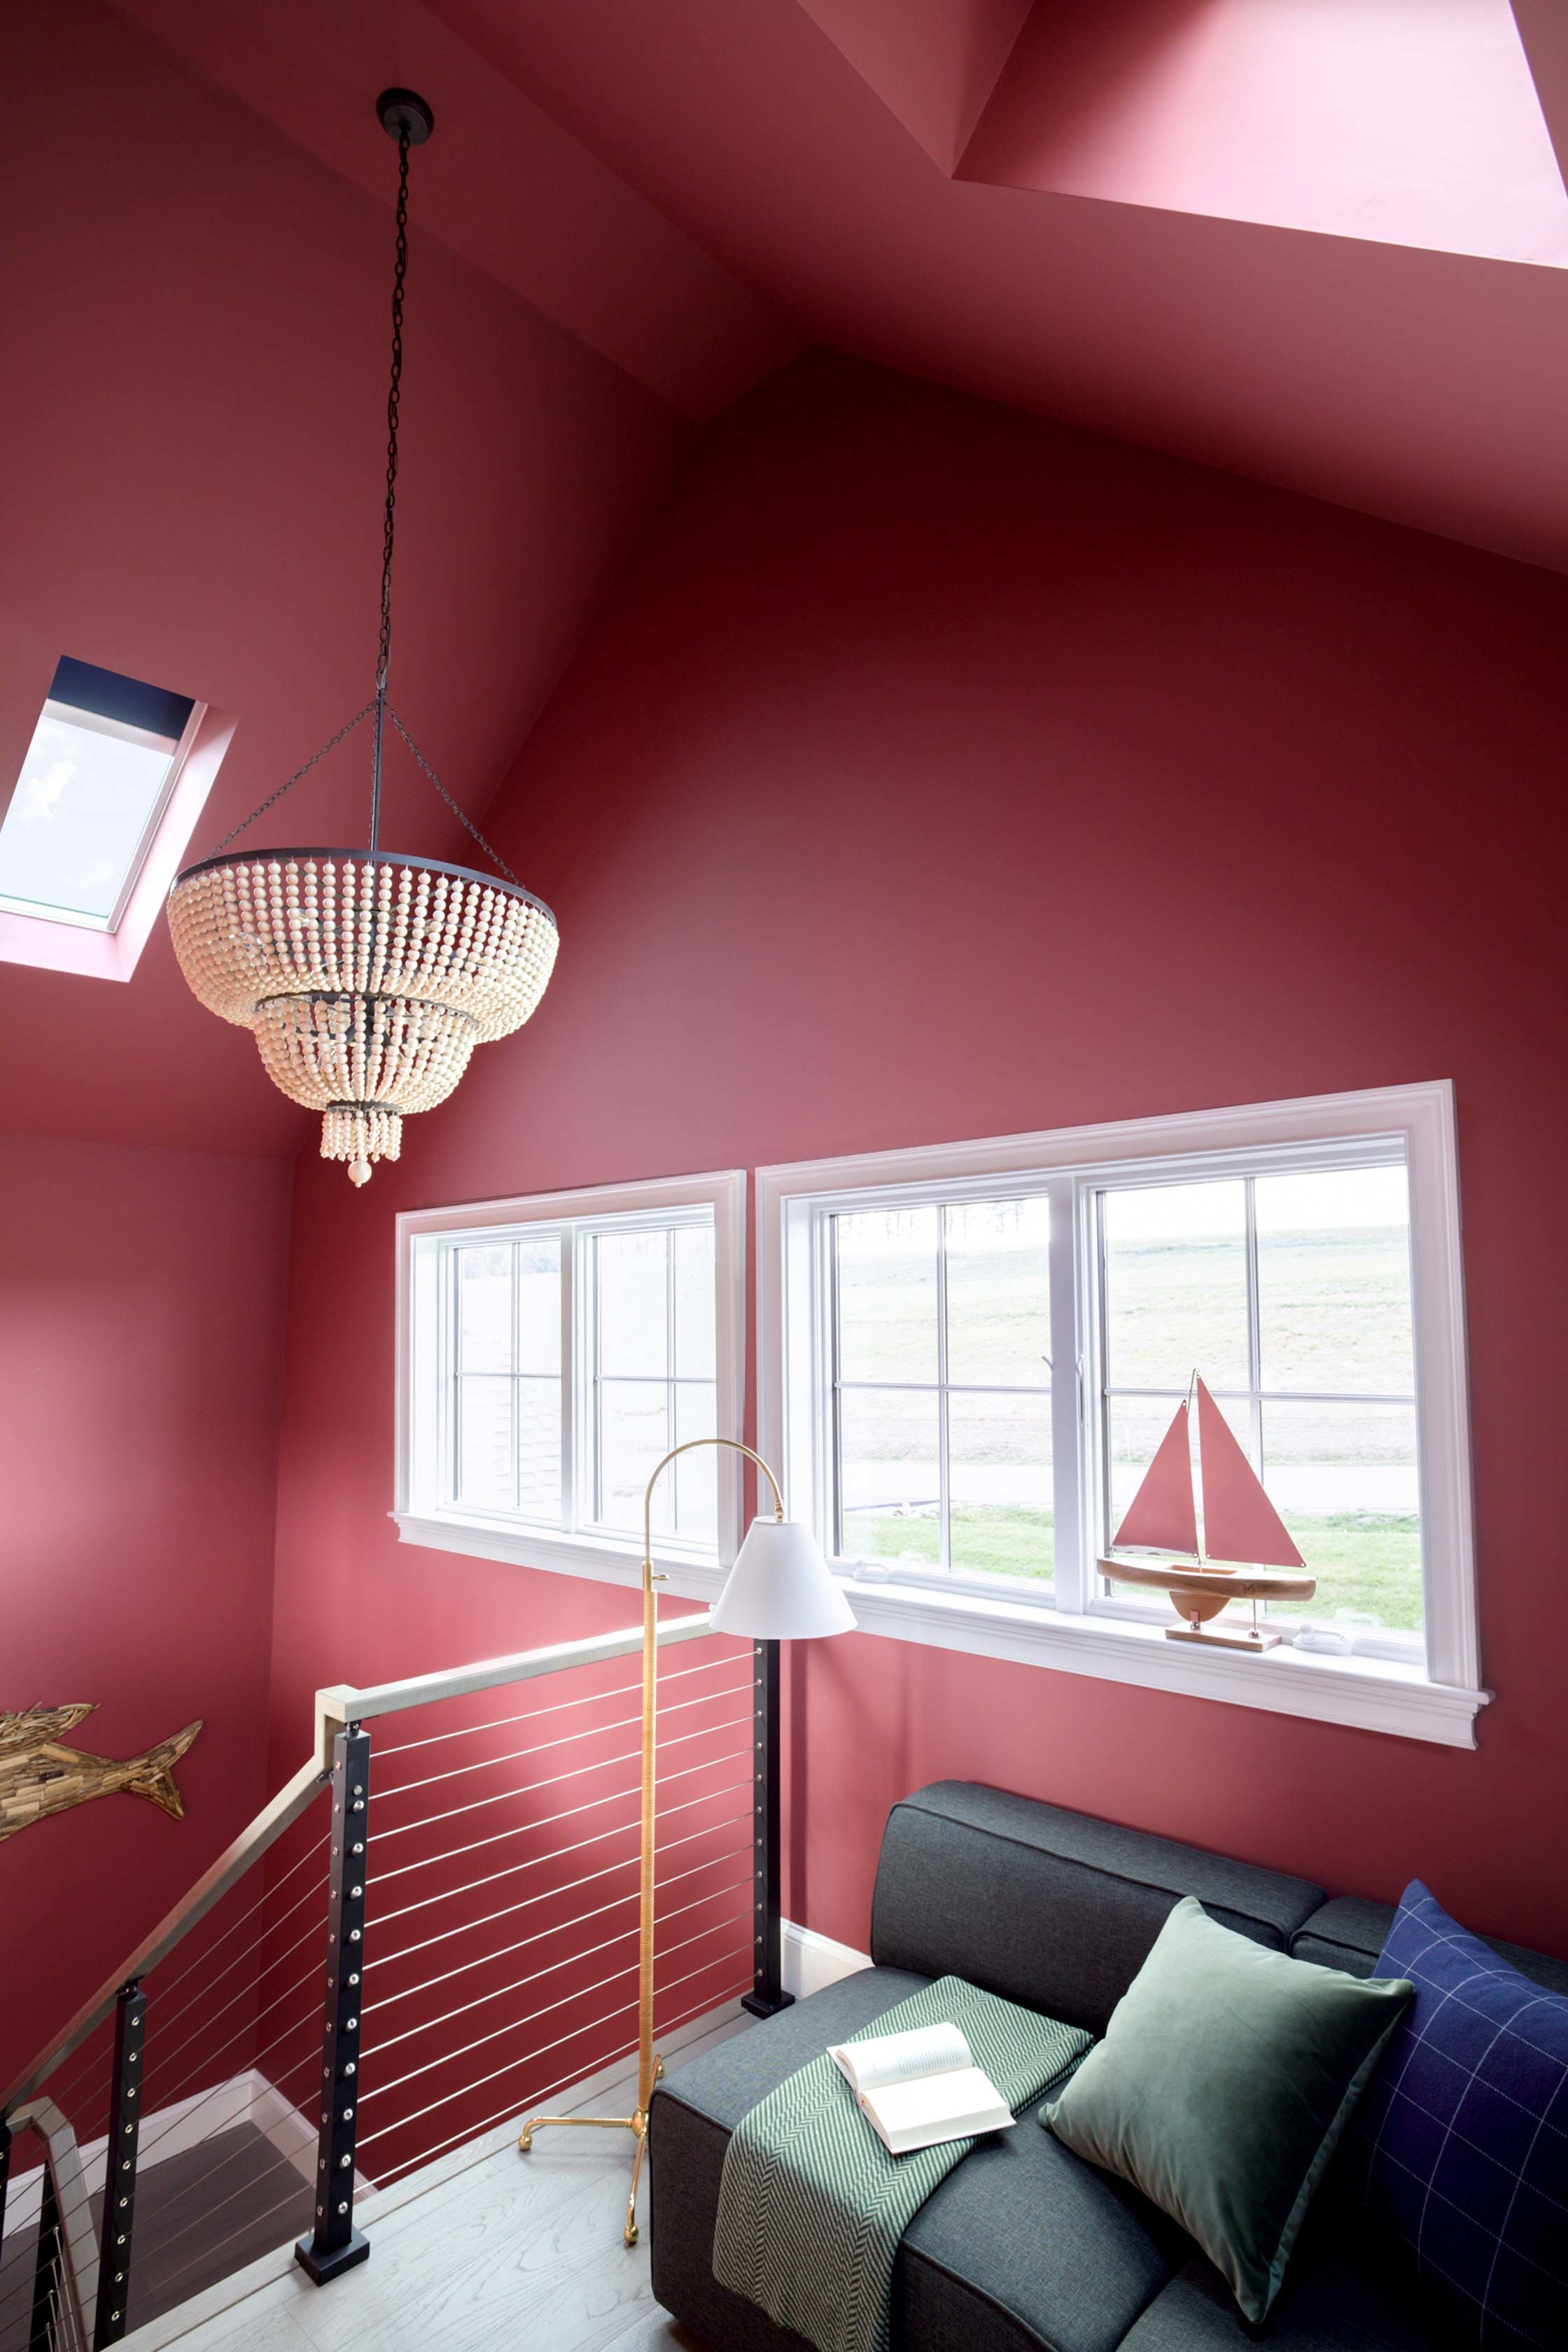 Red stairwell skylights